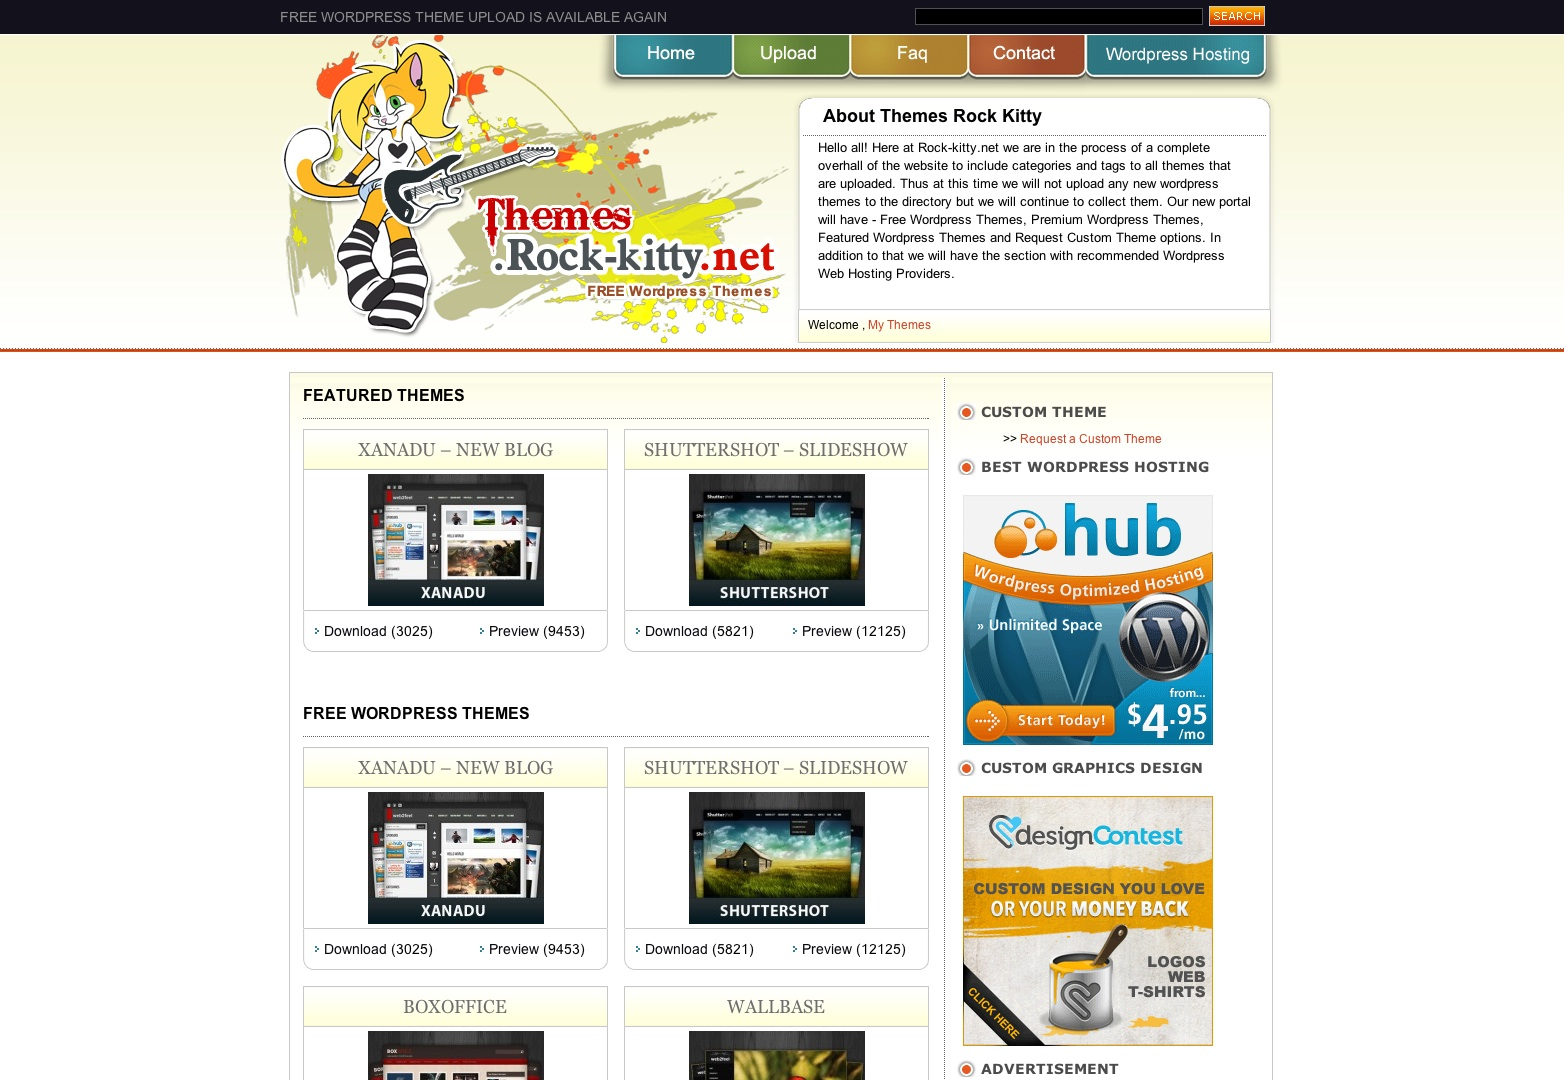 FREE WORDPRESS THEMES - WP THEMES DESIGNS